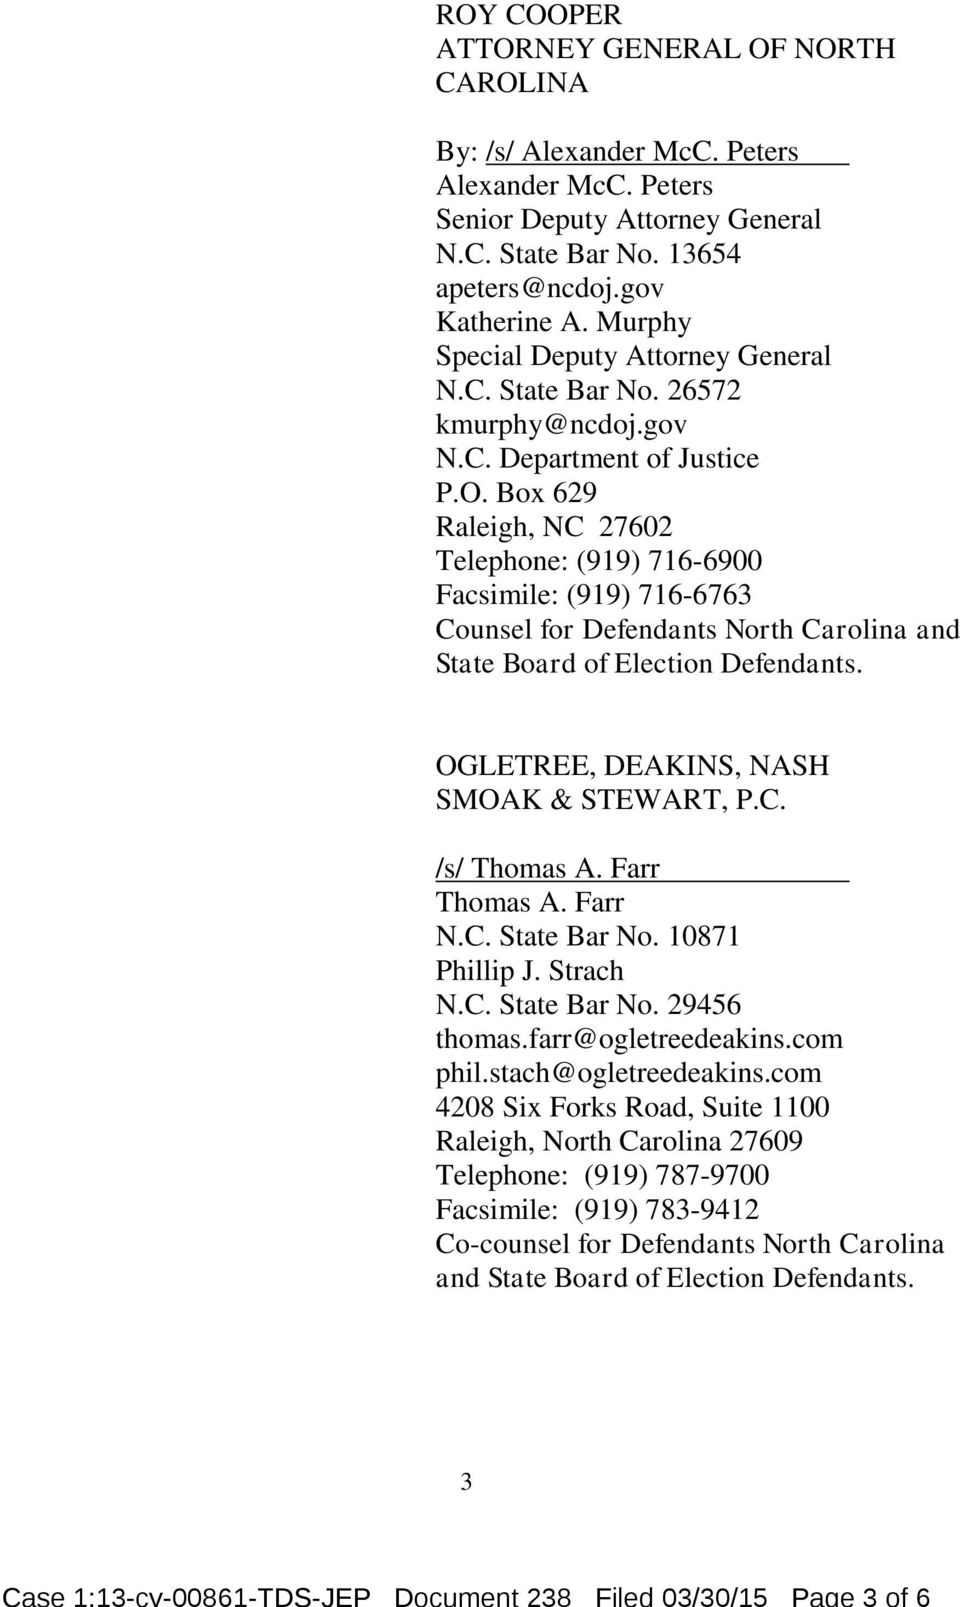 Box 629 Raleigh, NC 27602 Telephone: (919) 716-6900 Facsimile: (919) 716-6763 Counsel for Defendants North Carolina and State Board of Election Defendants. OGLETREE, DEAKINS, NASH SMOAK & STEWART, P.